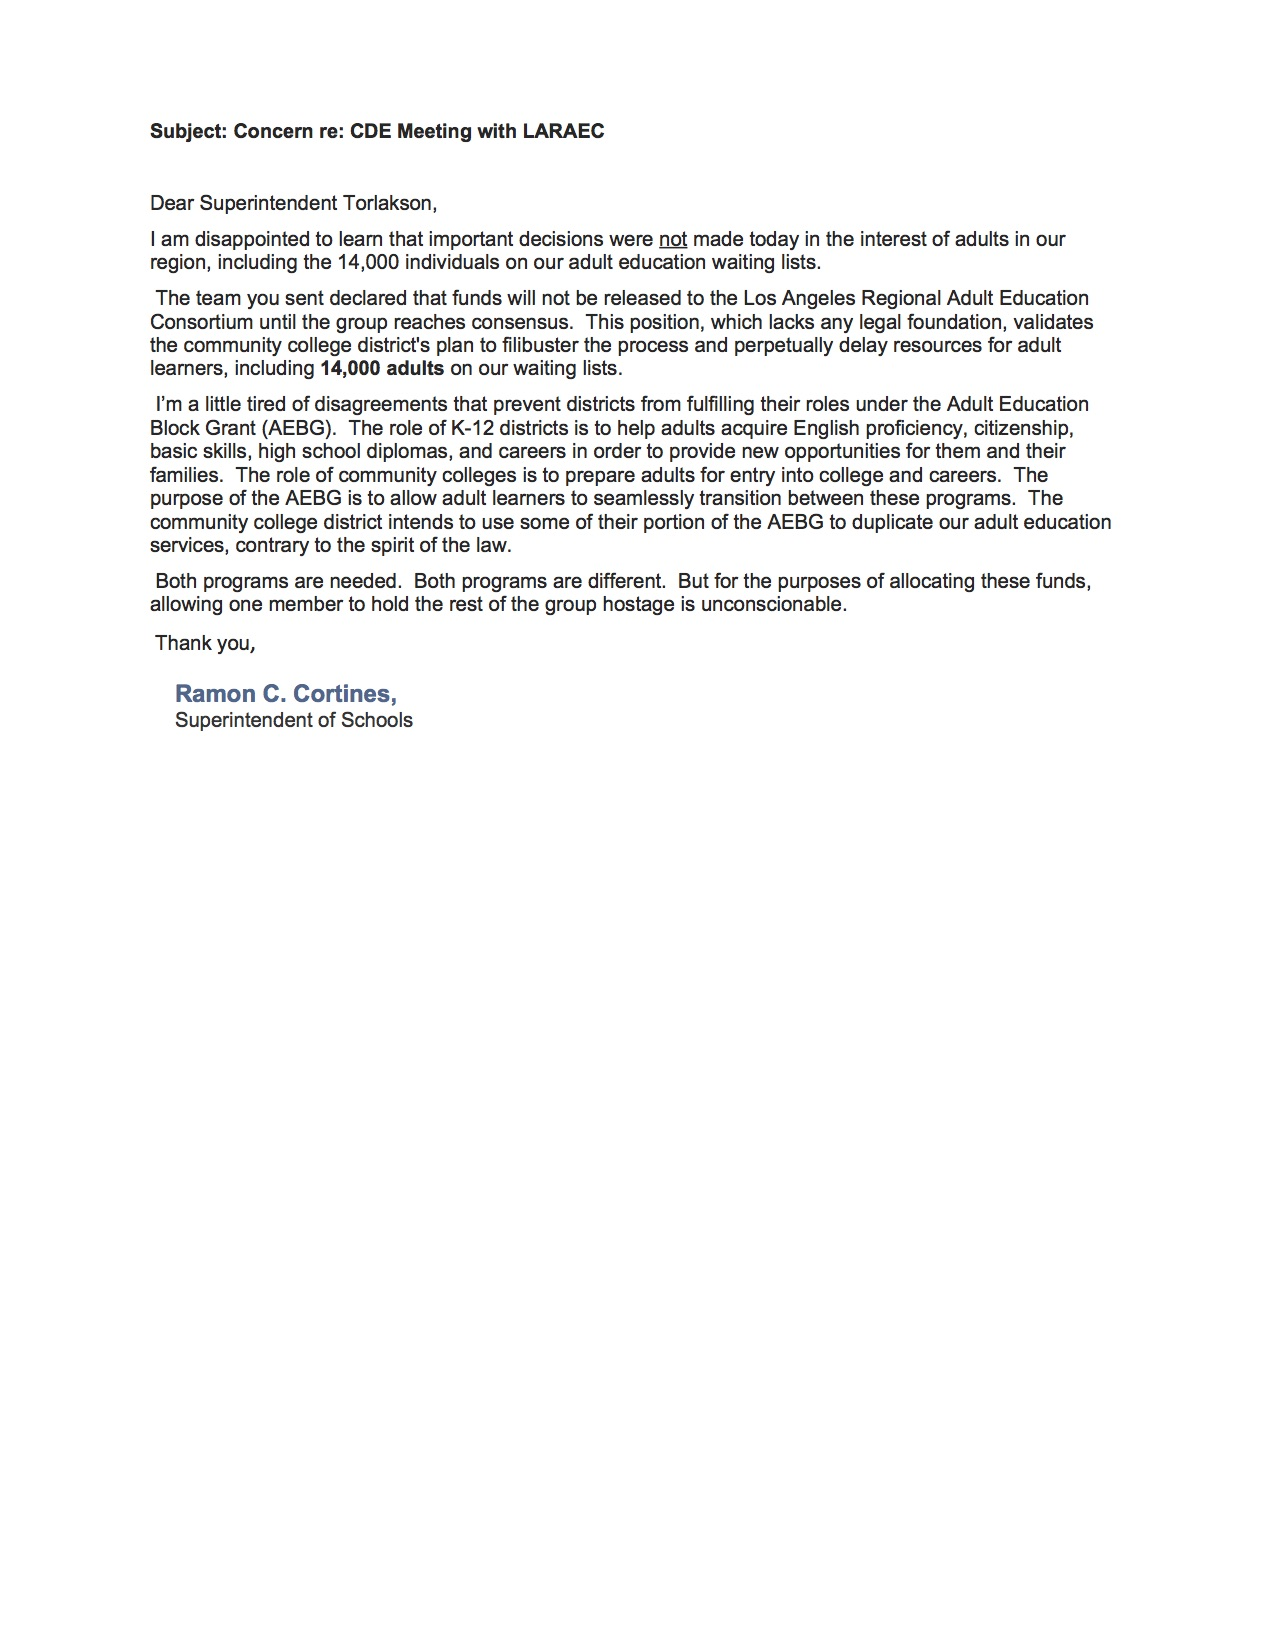 letter_from_Cortines_to_Torlakson_november_2015.jpg